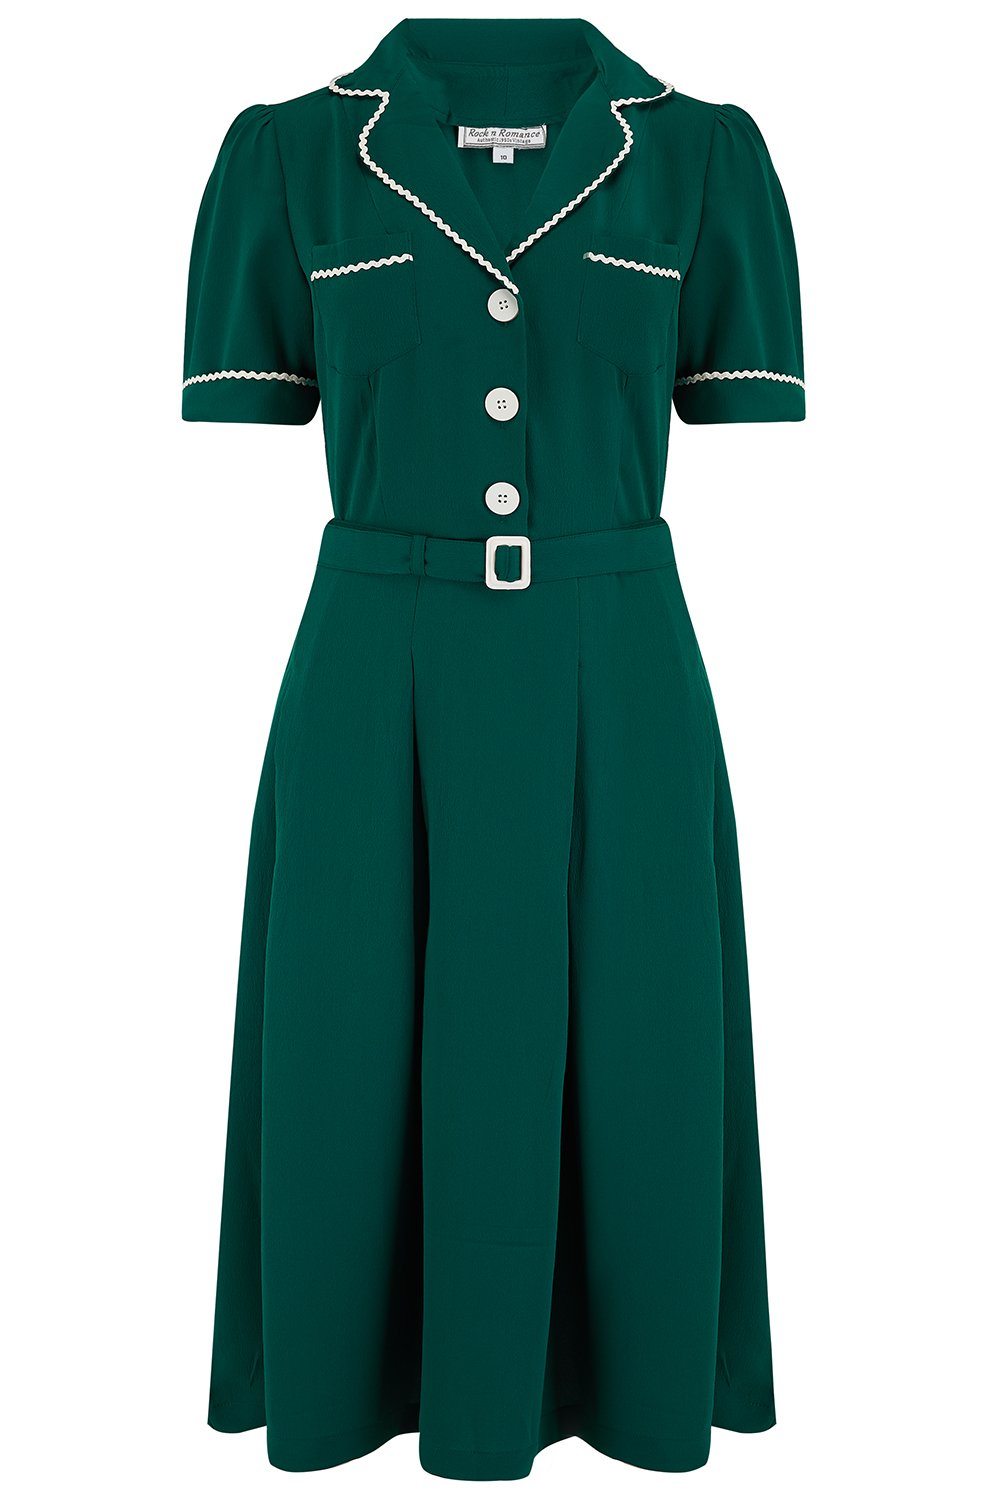 "NEW ""Kitty"" Shirtwaister Dress in Green with Contrast Ric-Rac, Authentic Early 1950s Style AW19"